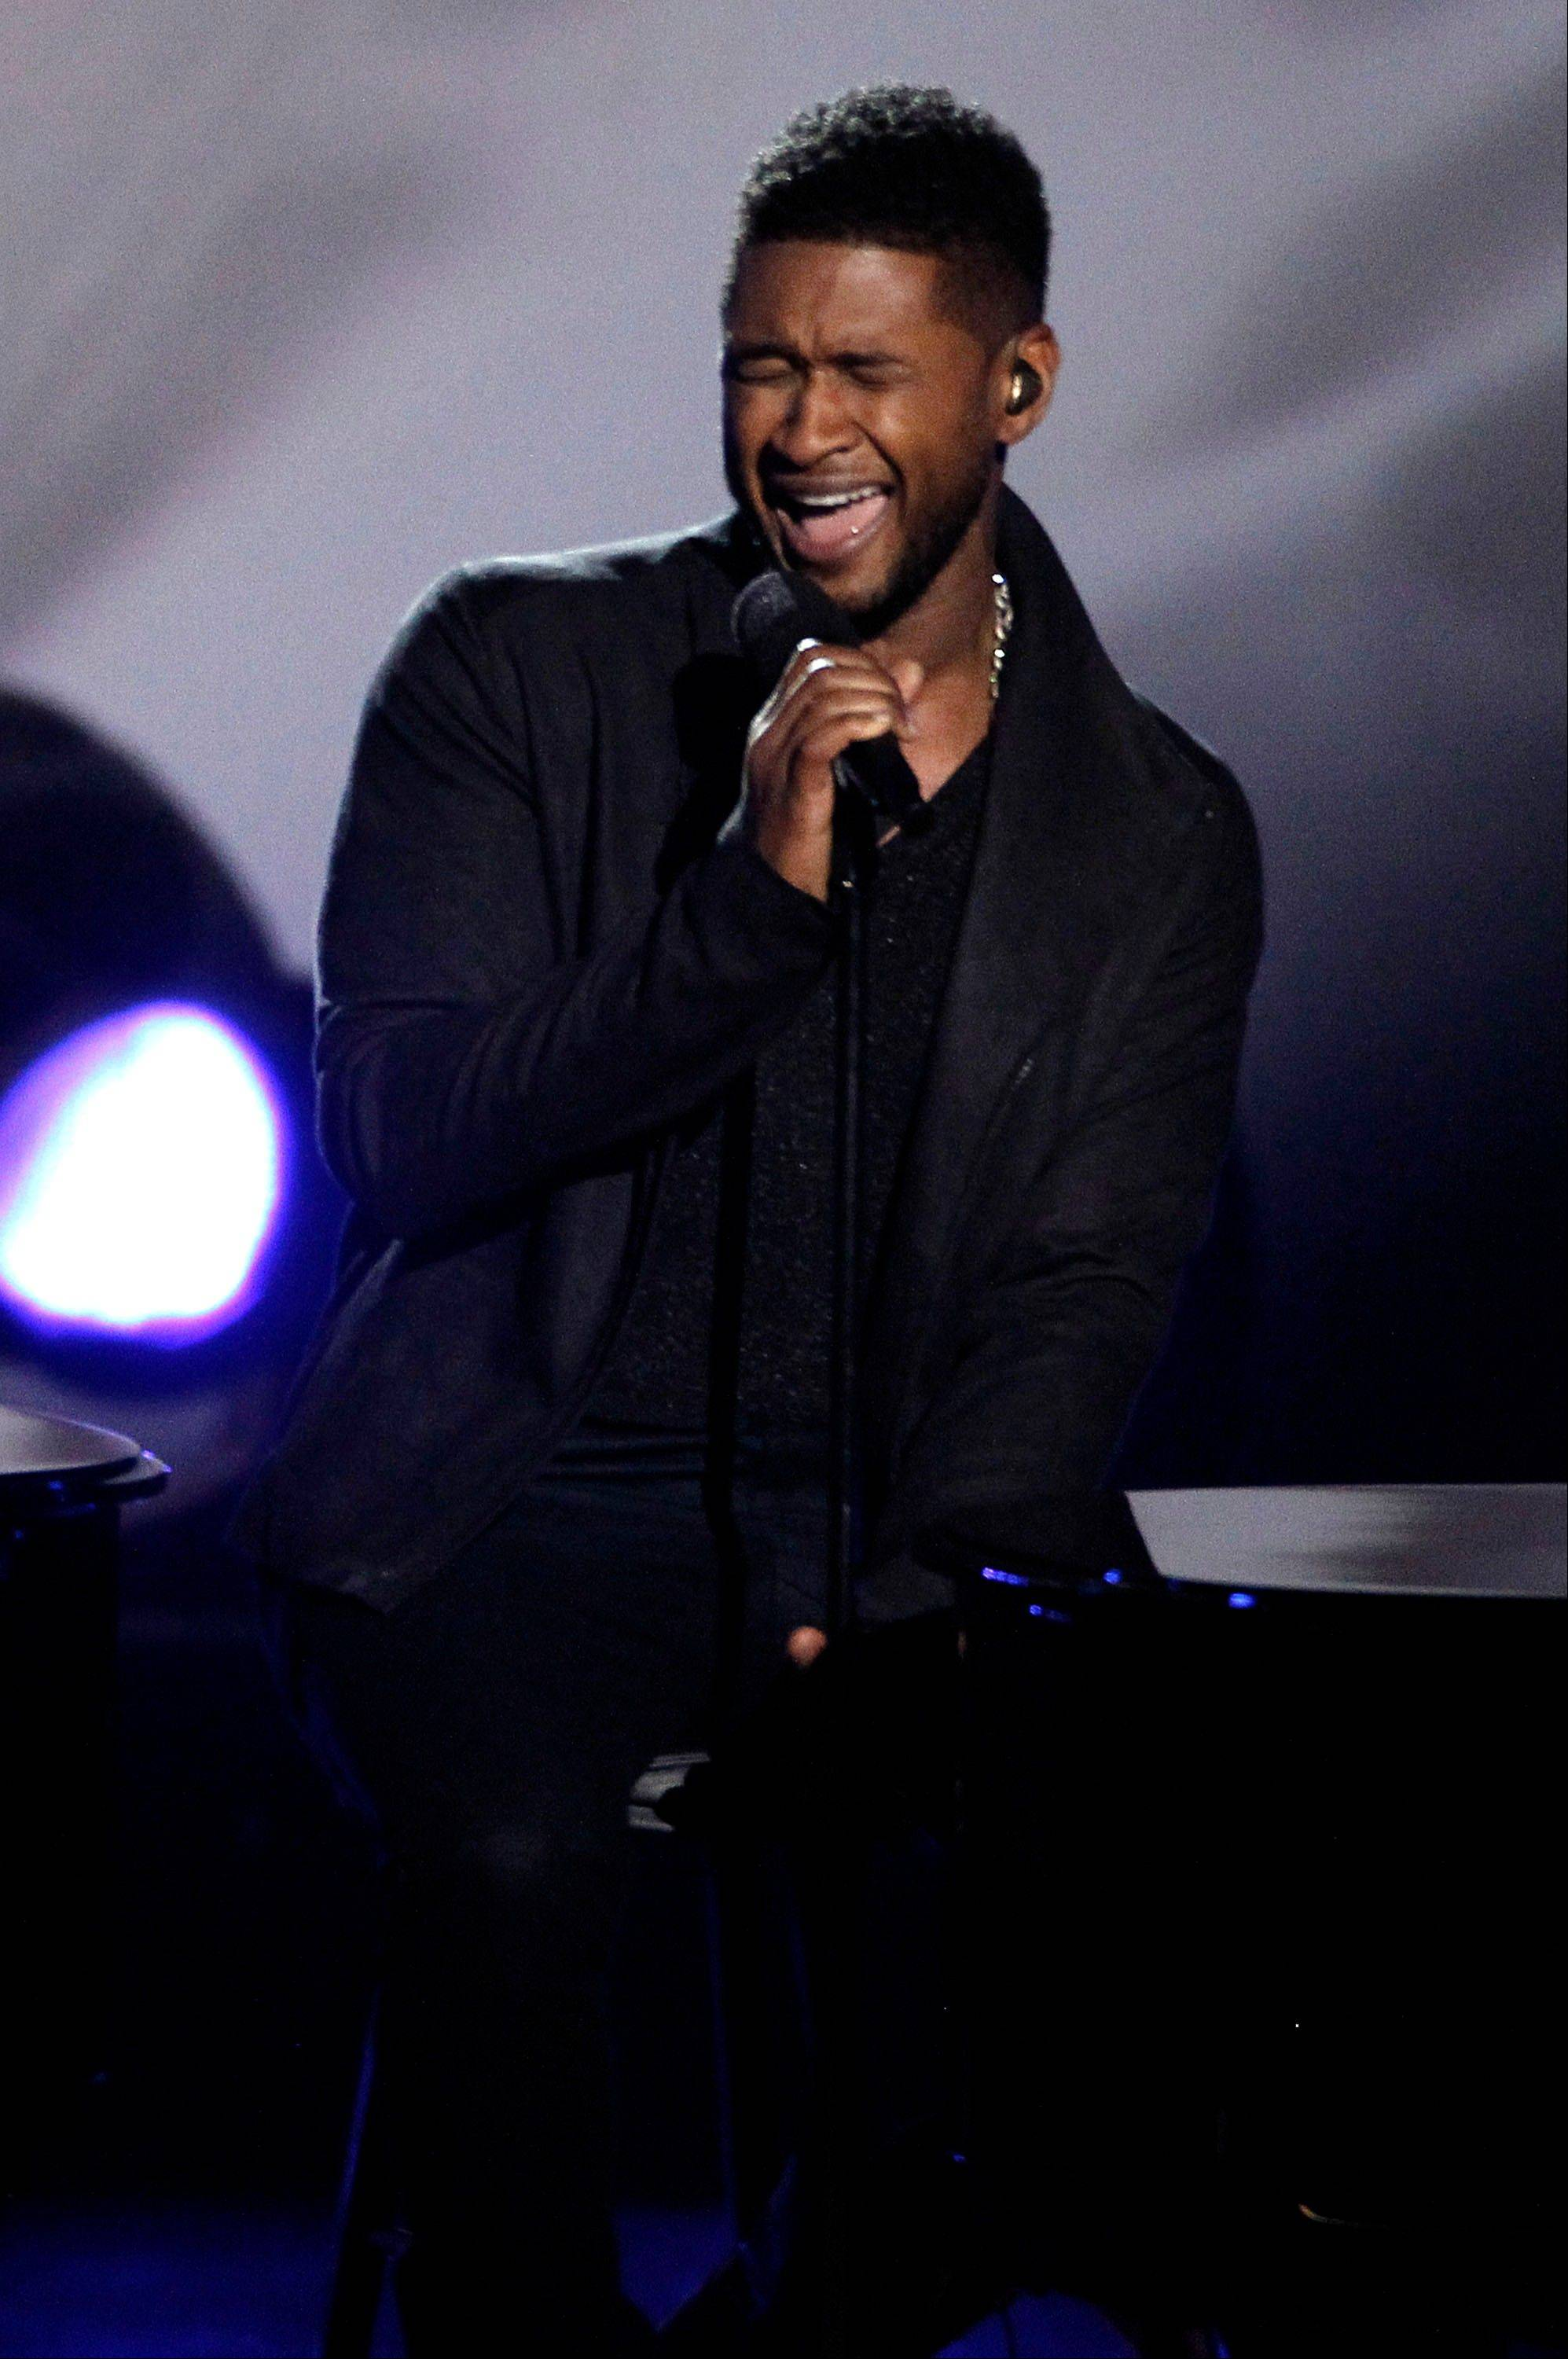 Usher performs Wednesday at the Grammy Nominations Concert in Los Angeles.